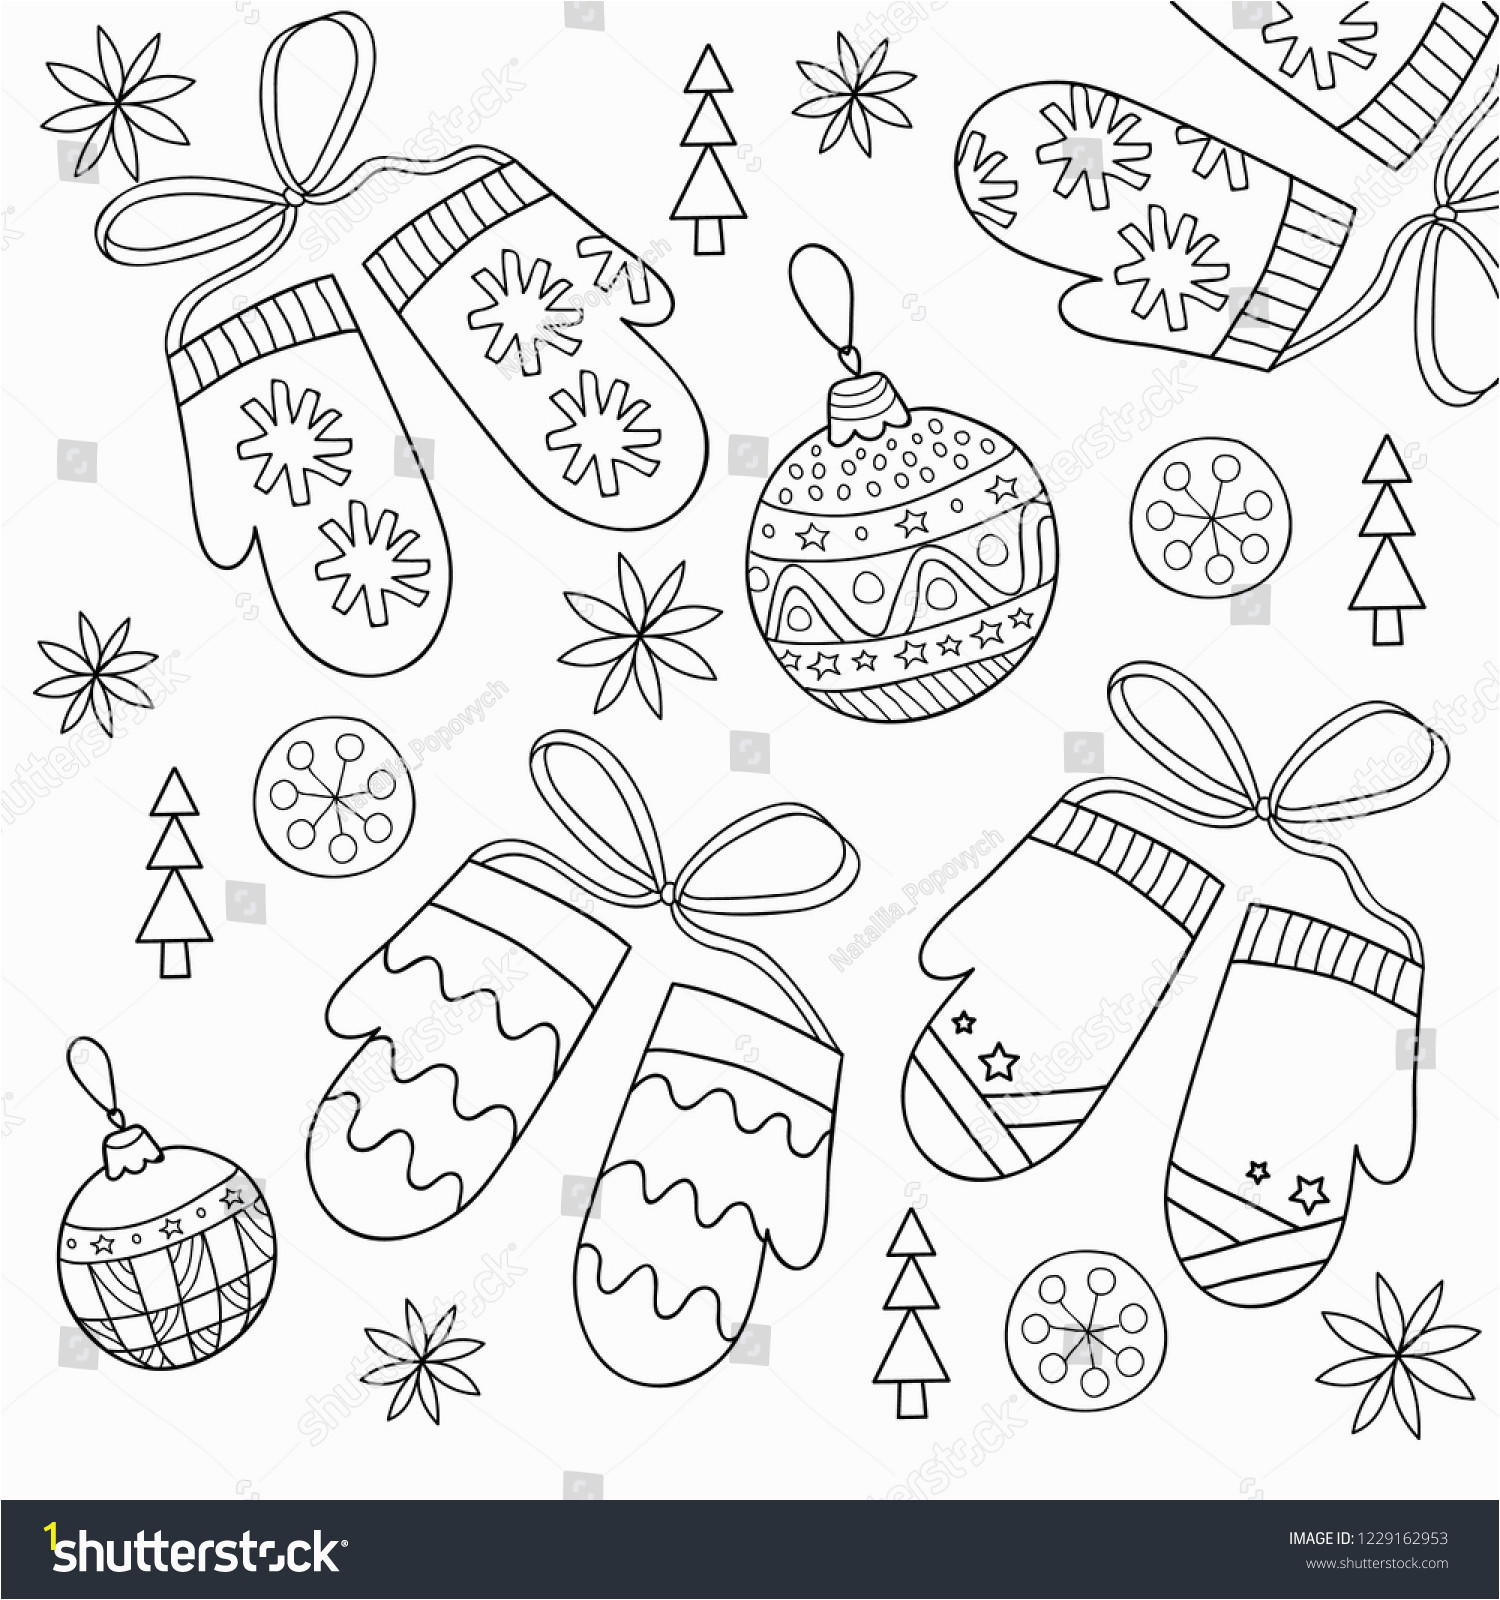 printable kindergarten coloring pages free fruit christmas coloring page winter mittens snowflakes stock of kindergarten coloring pages free fruit